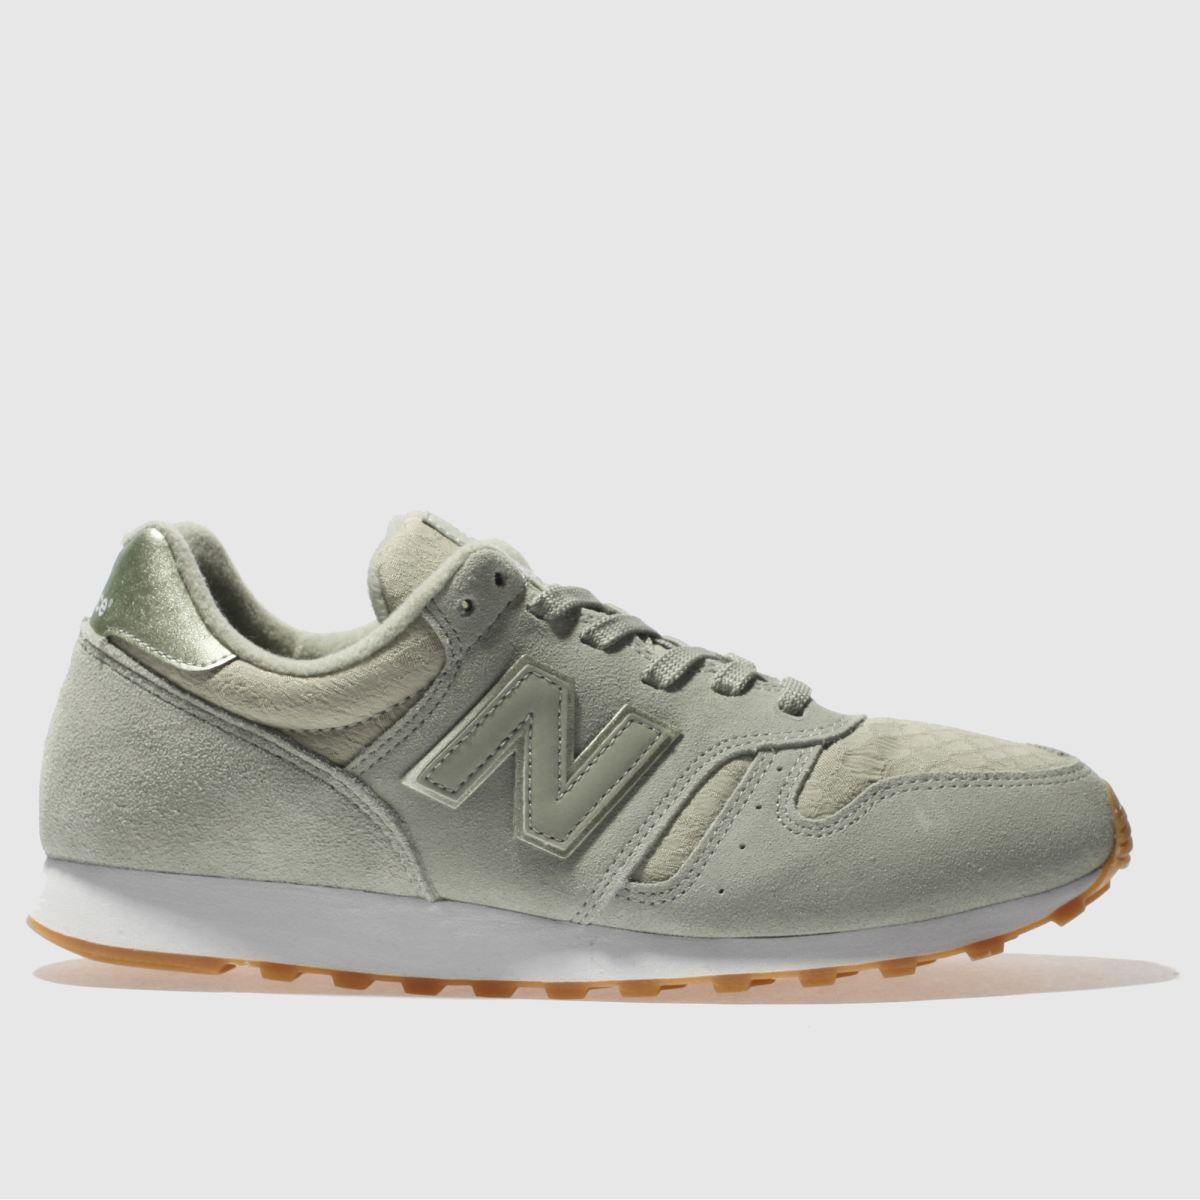 New Balance Light Green 373 Suede Trainers